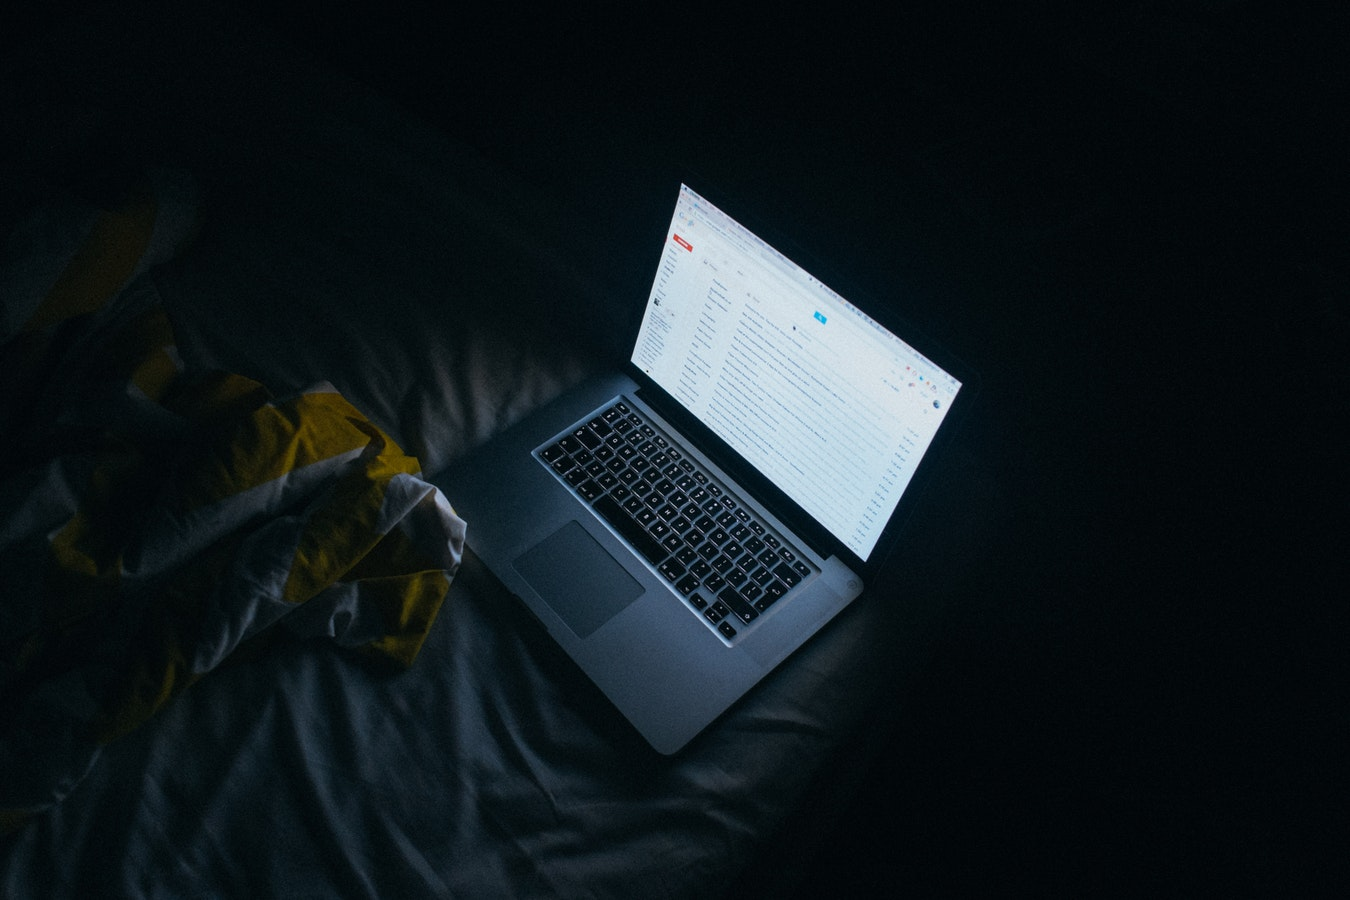 Using Gmail: How To Personalize Your Emails